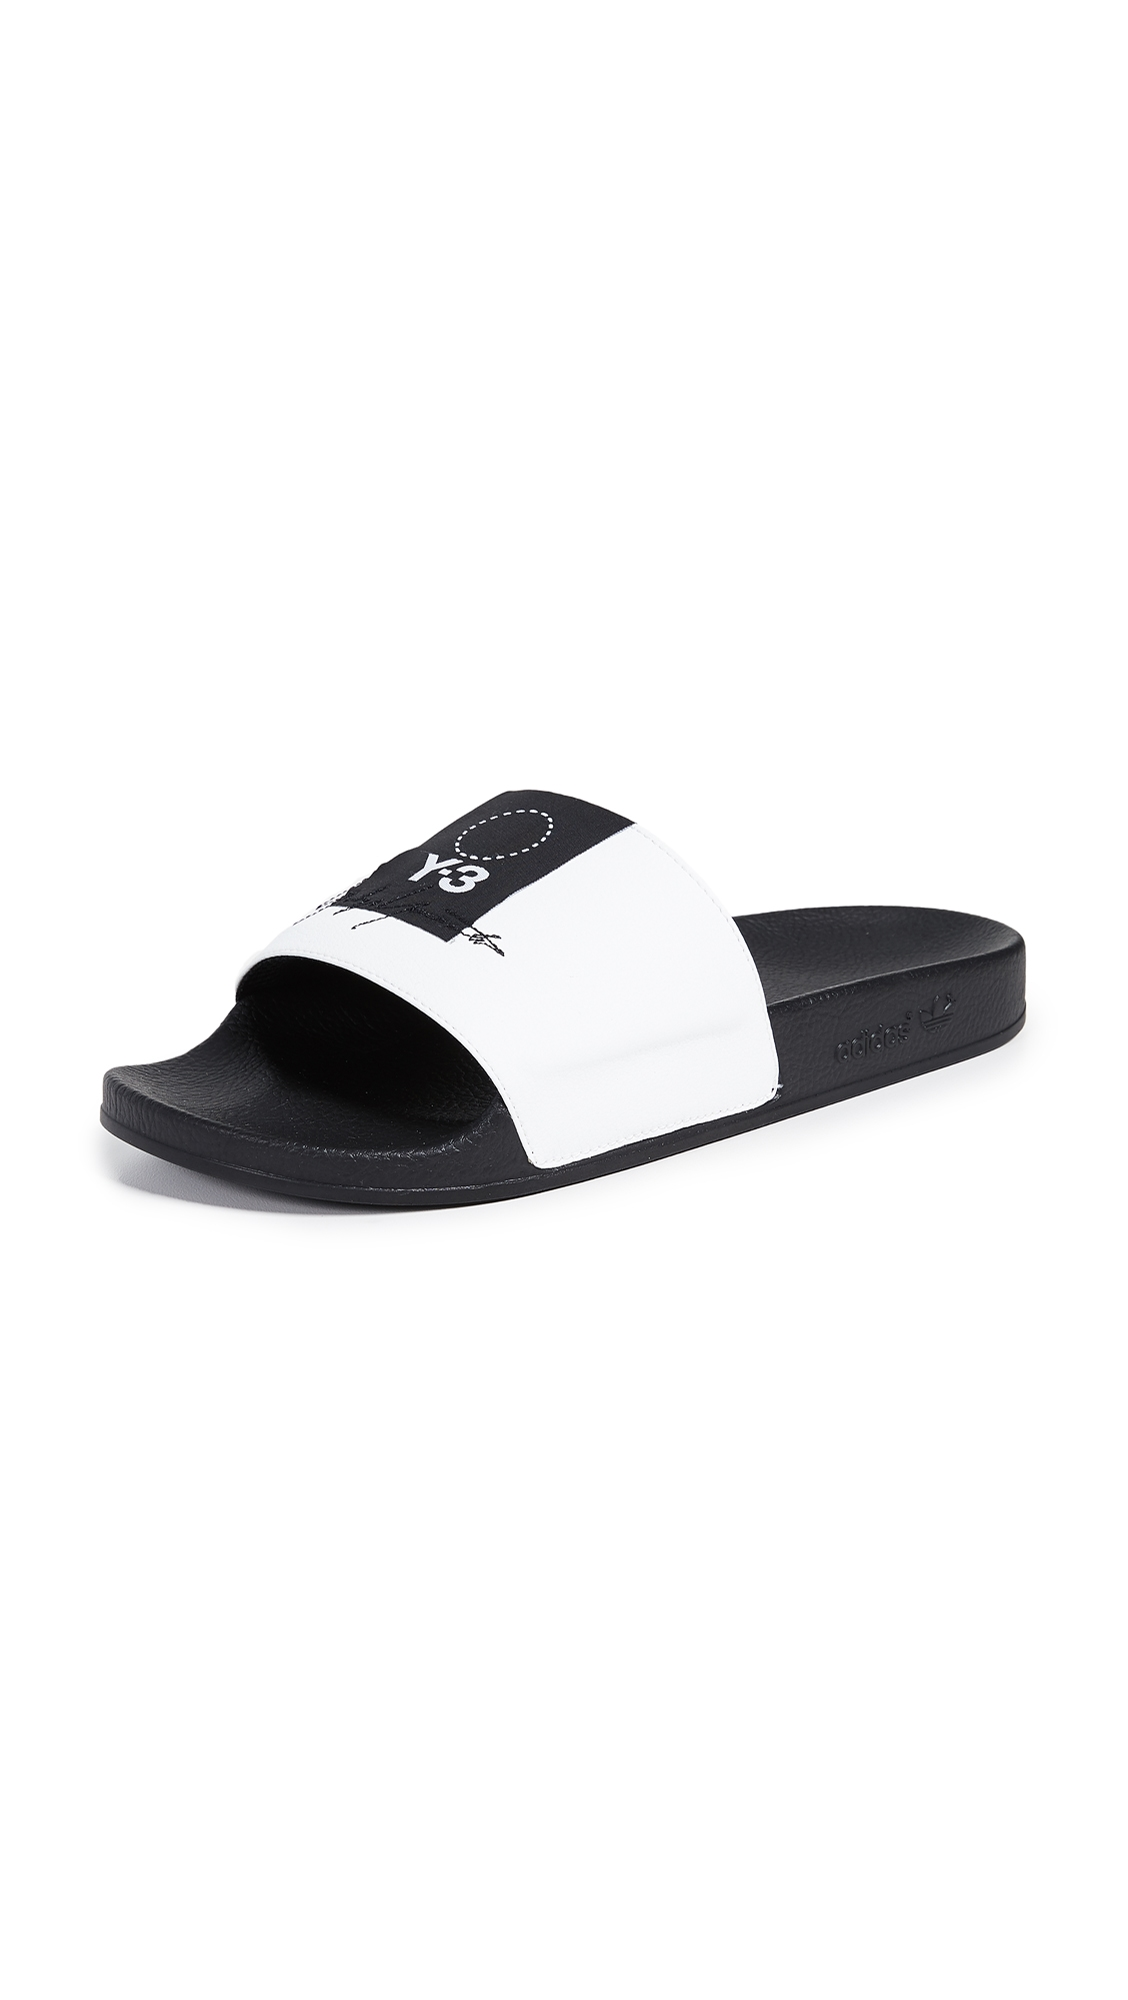 Men'S Adilette Slide Sandals, White/ Black